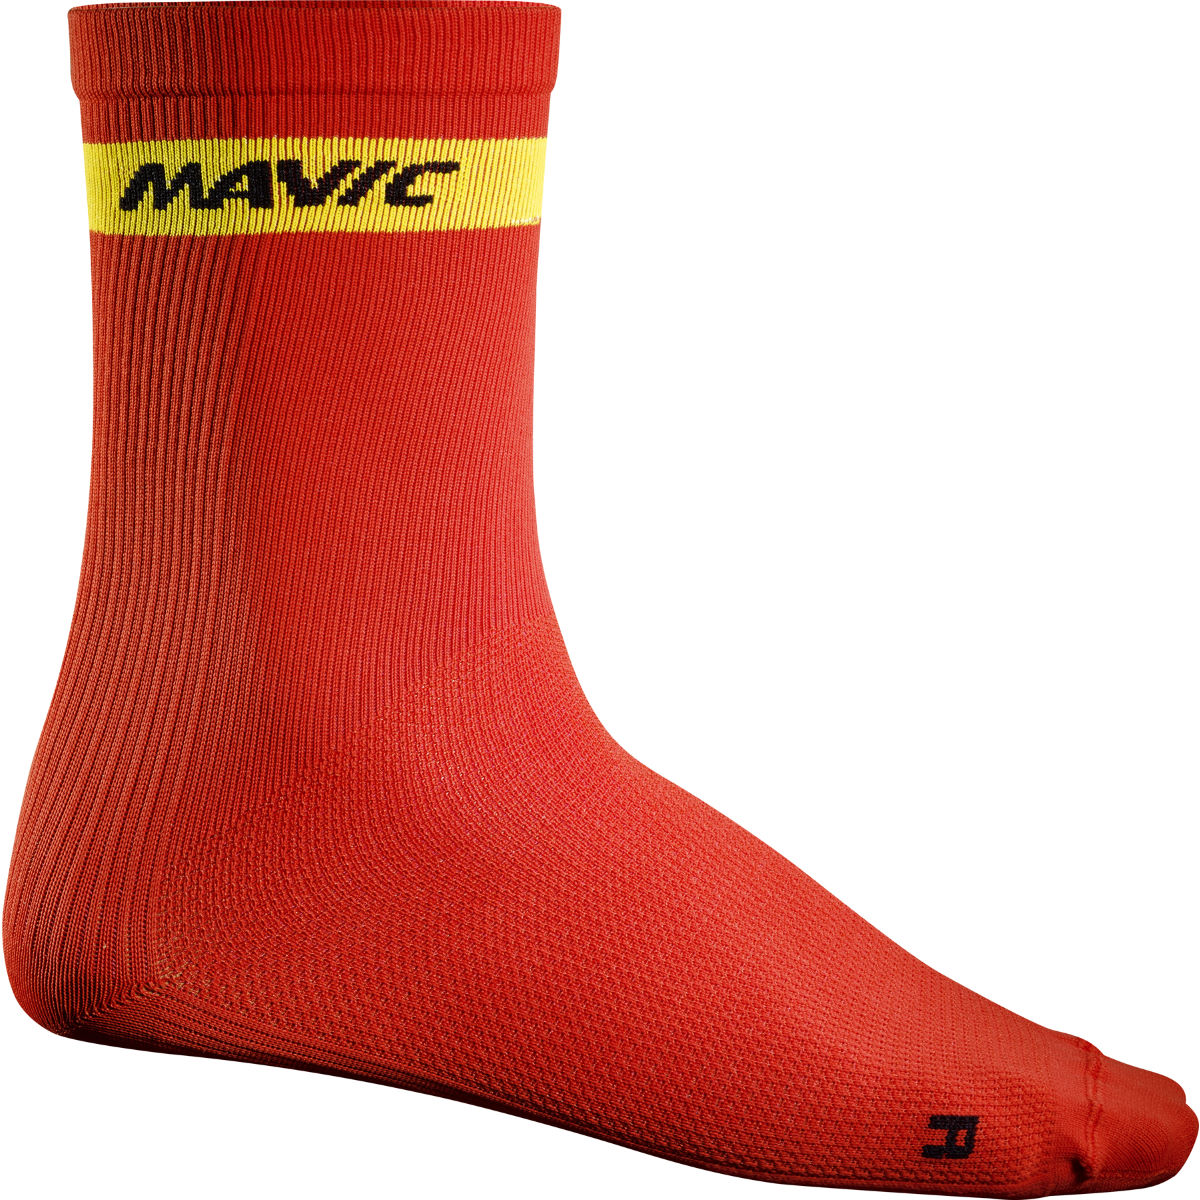 Chaussettes Mavic Cosmic (hautes) - 35-38 Racing Red Chaussettes vélo